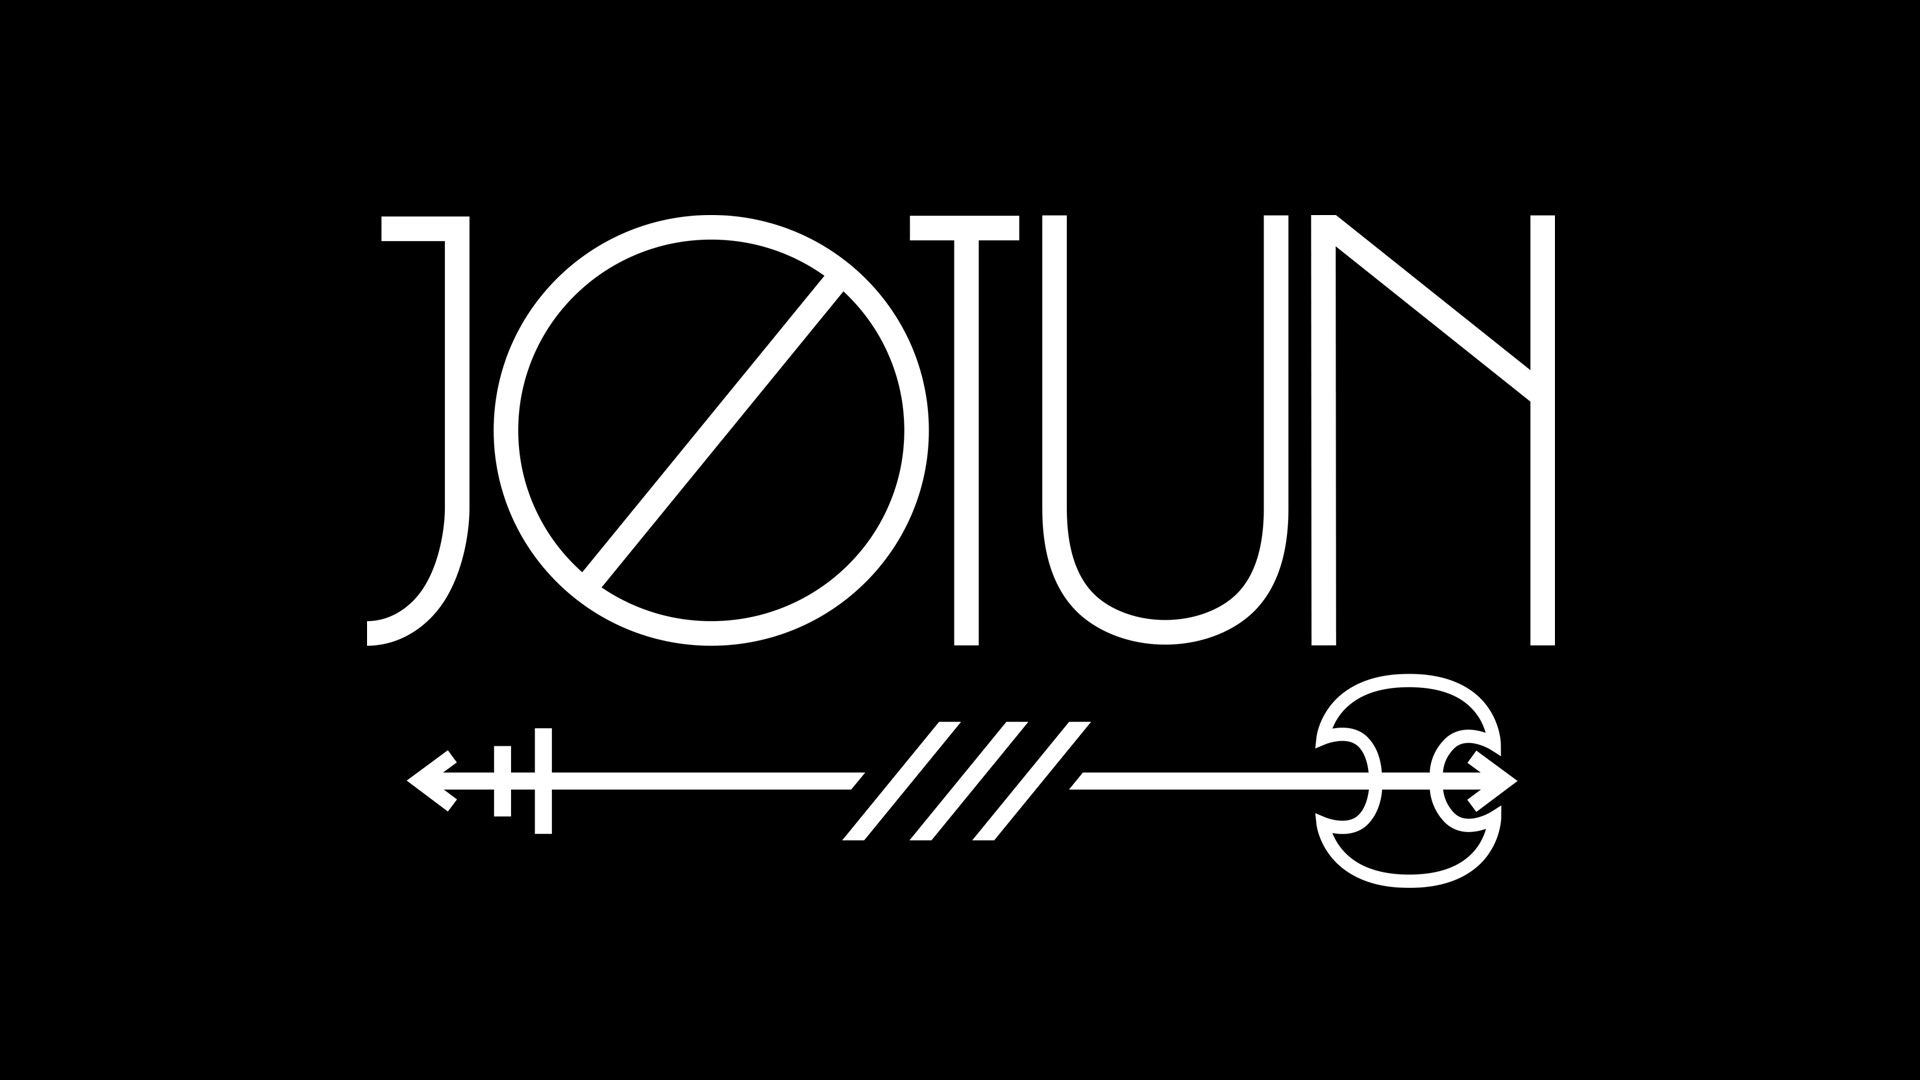 Jotun action adventure exploration releases for Linux, Mac and Windows PC